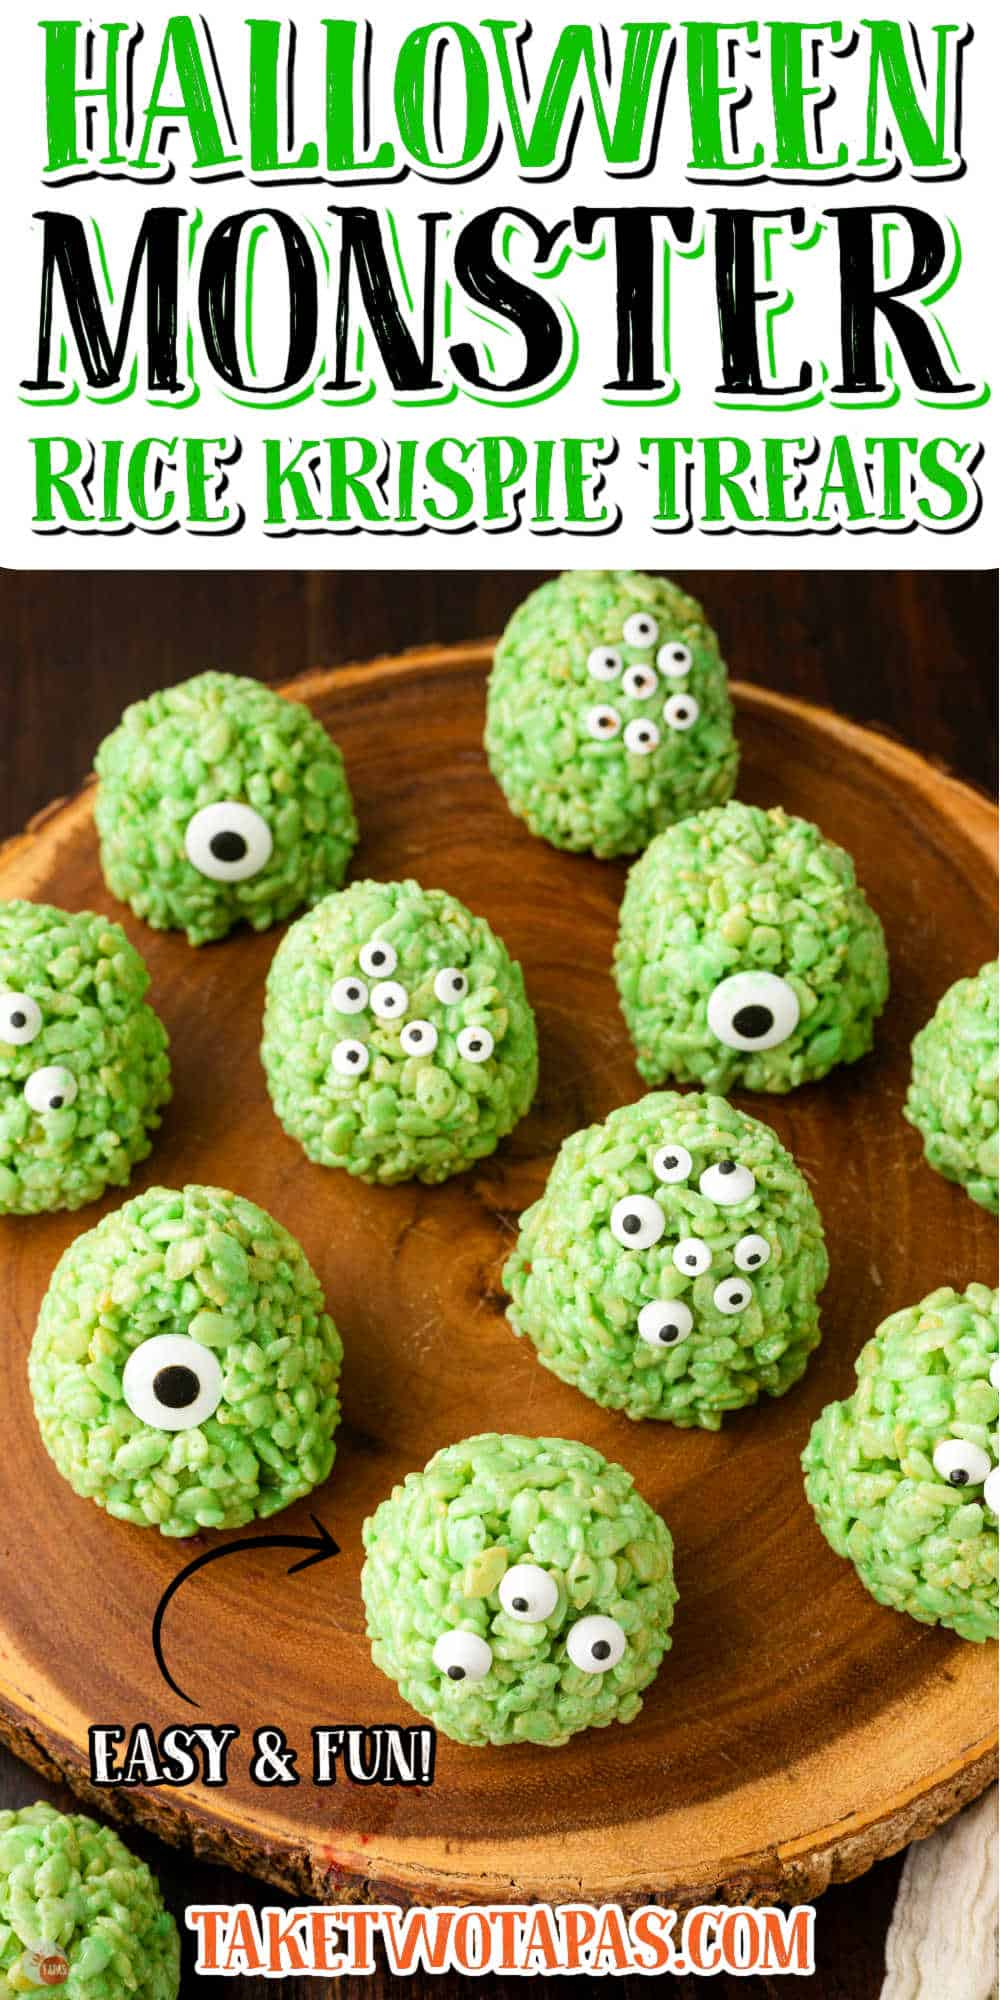 """halloween monster marshmallow treats with text """"fun and easy"""""""